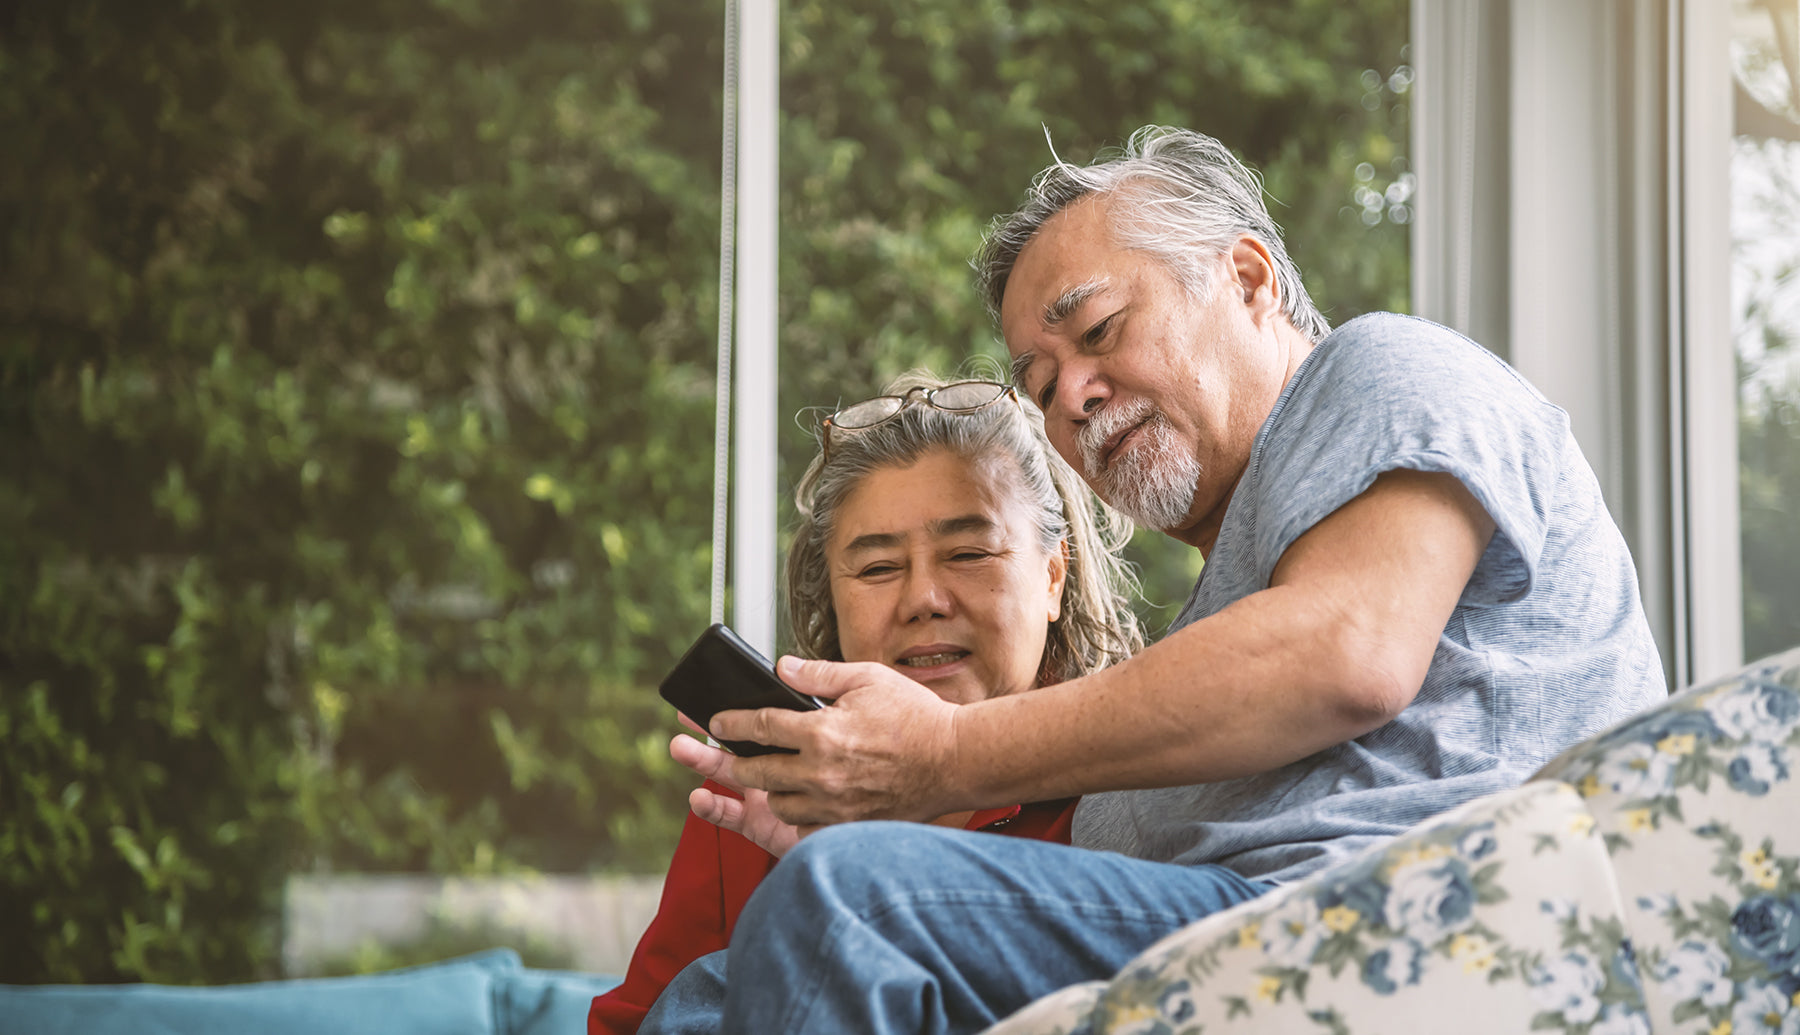 Upper middle aged asian couple on screened in porch looking at smartphone together